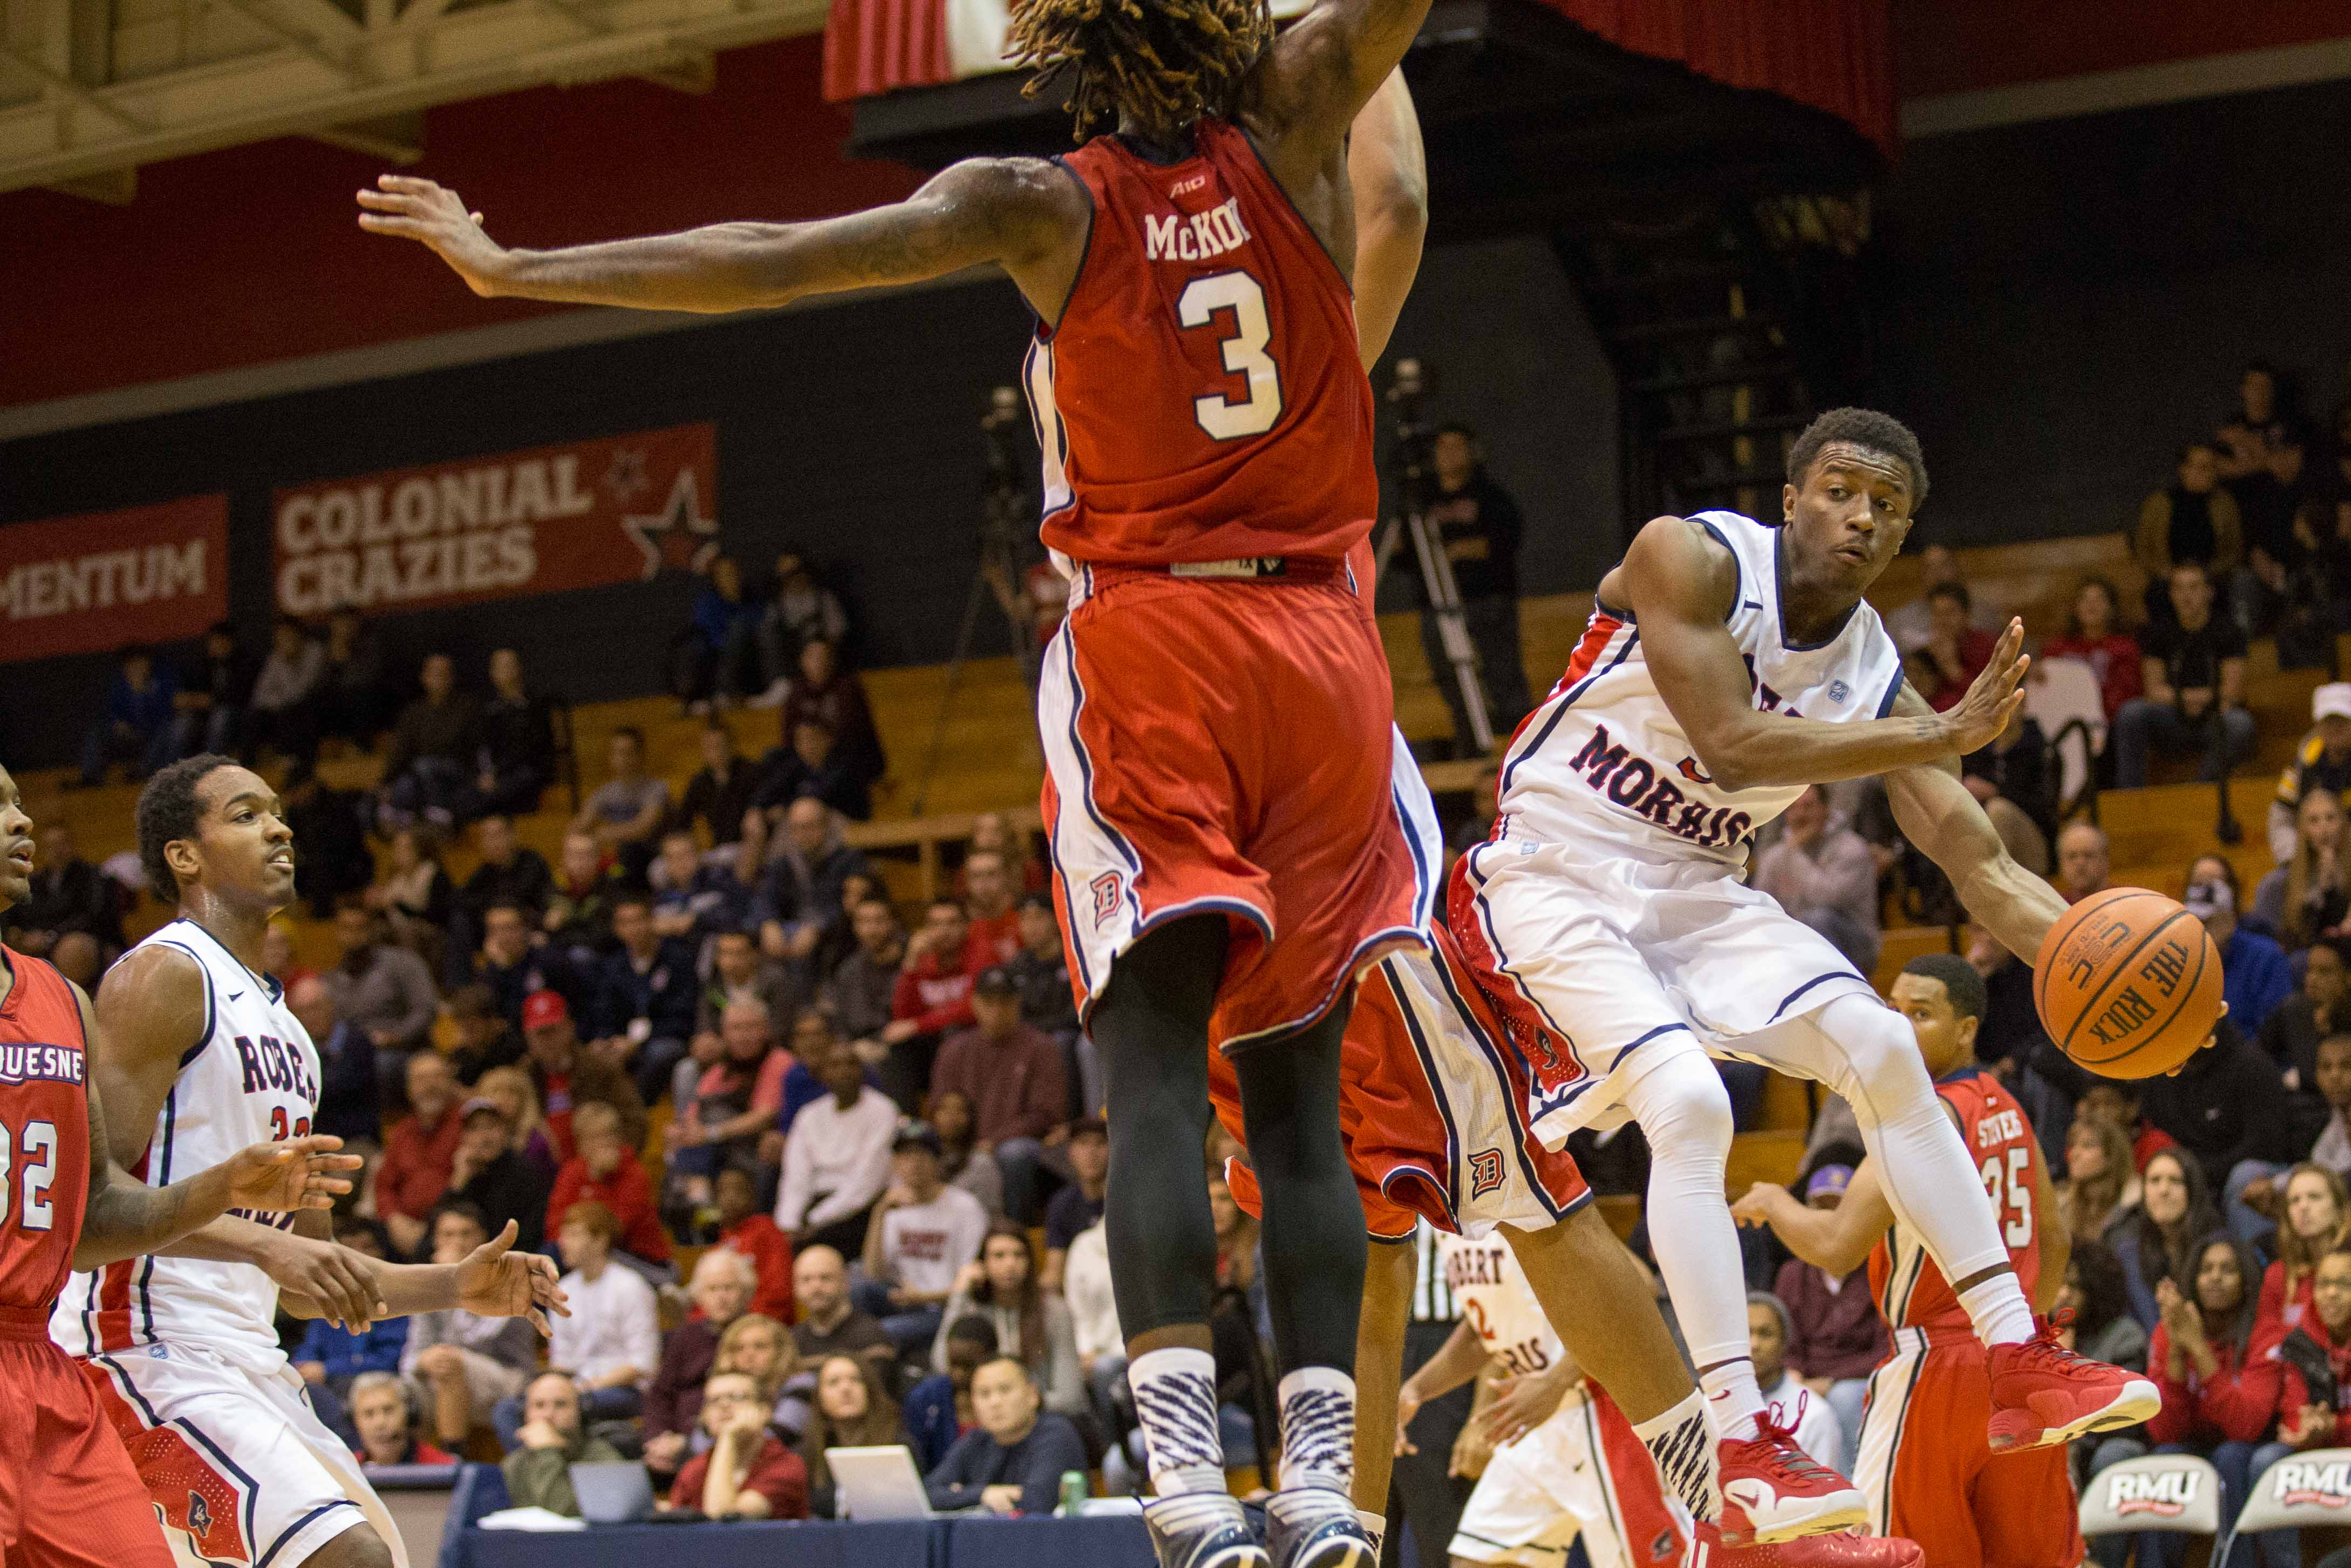 Kavon Stewart finished with 12 points and 11 assists as RMU rolled over A-10 foe  Duquesne.